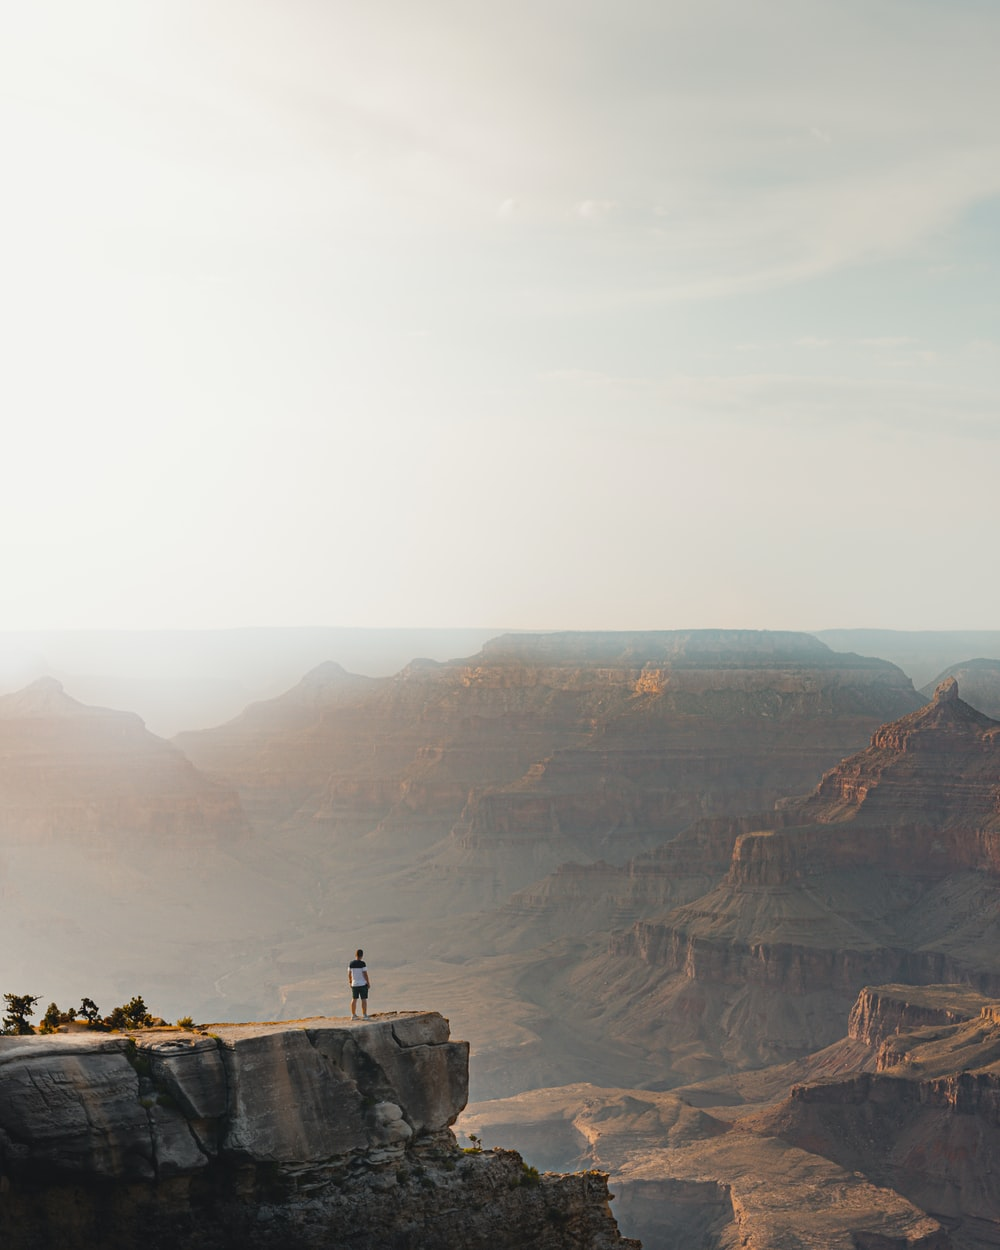 person standing on rock cliff during daytime